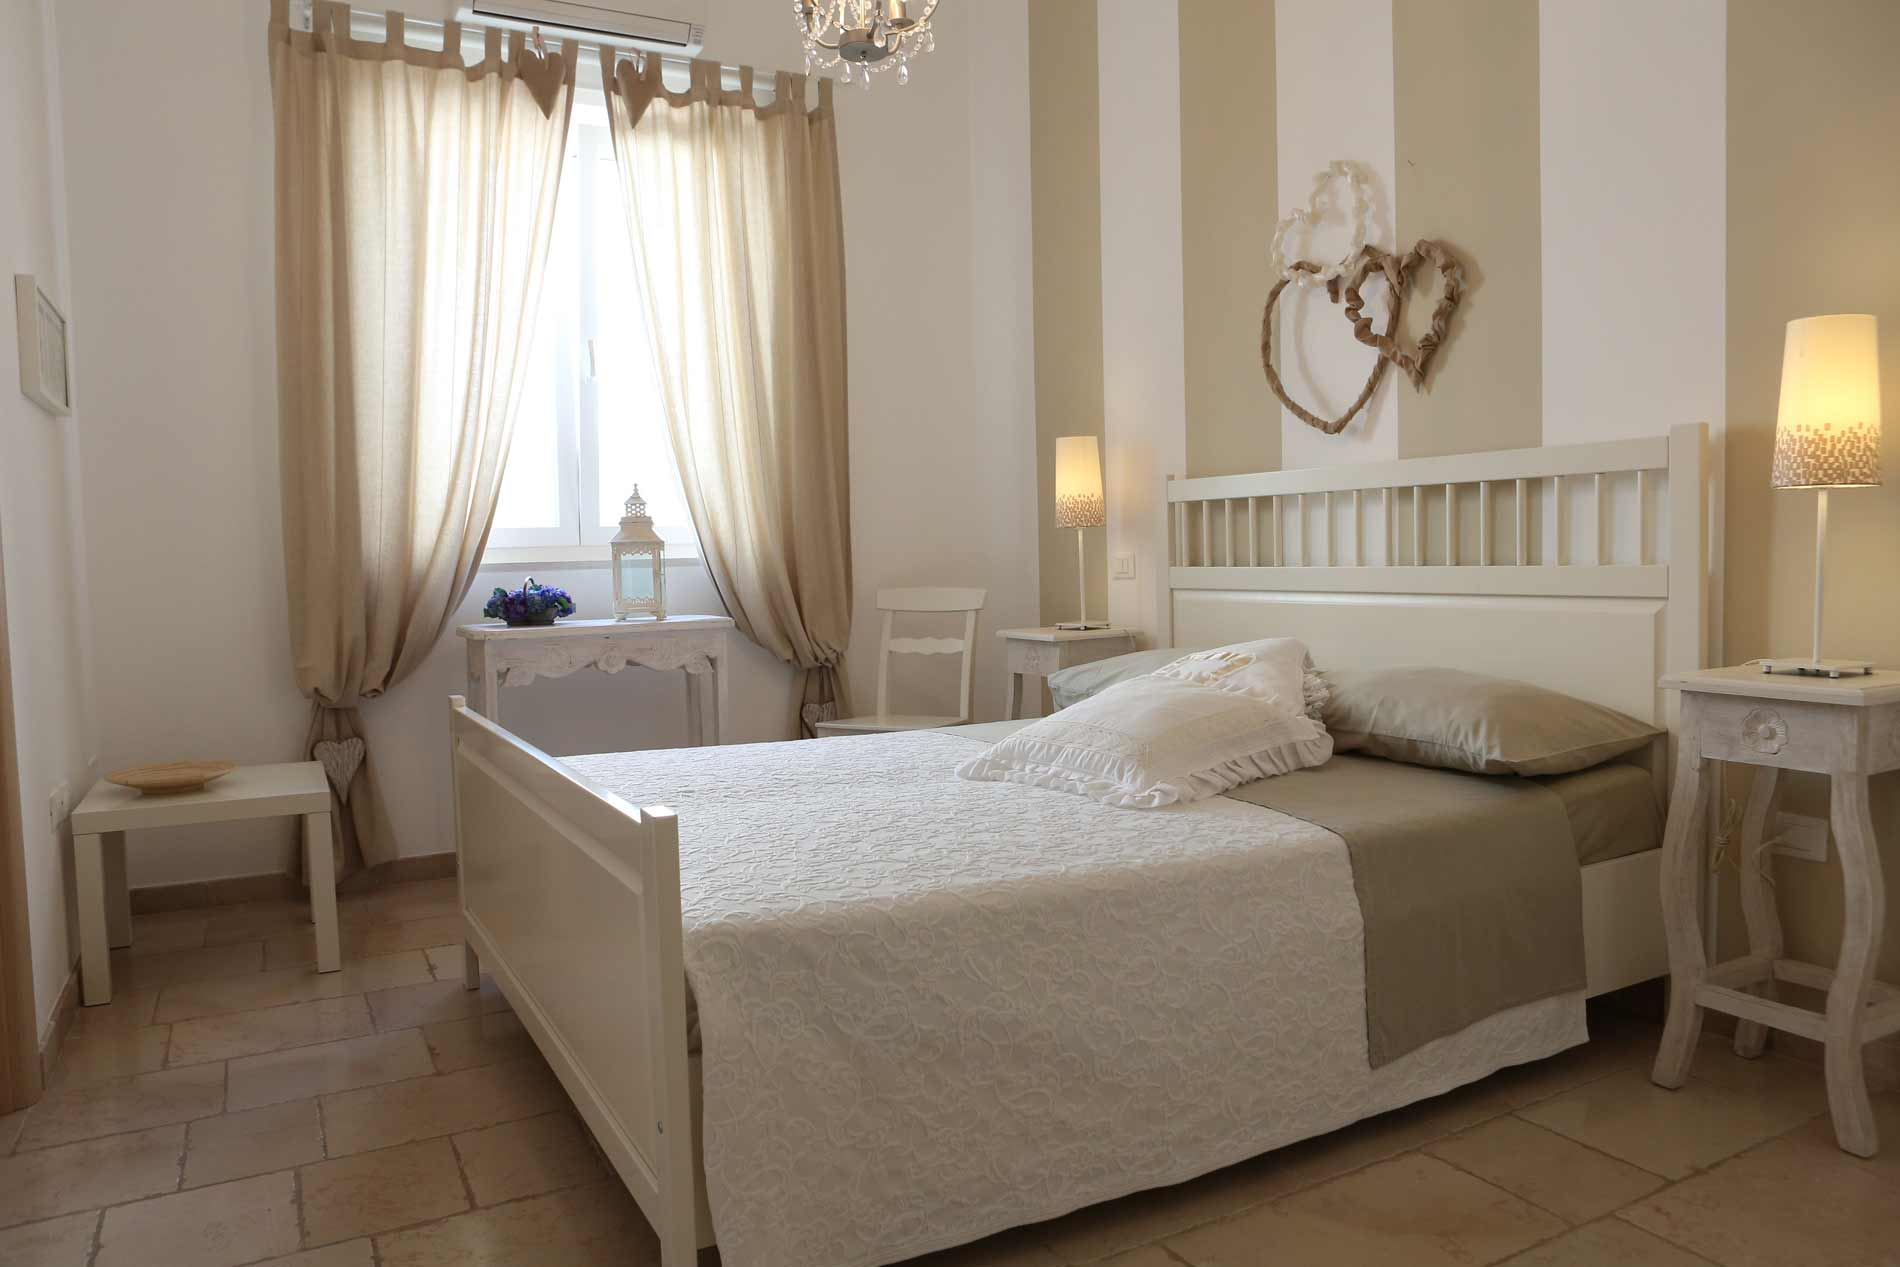 Camere Da Letto Classiche Romantiche : Tende per la camera da letto totaldesigntotaldesign